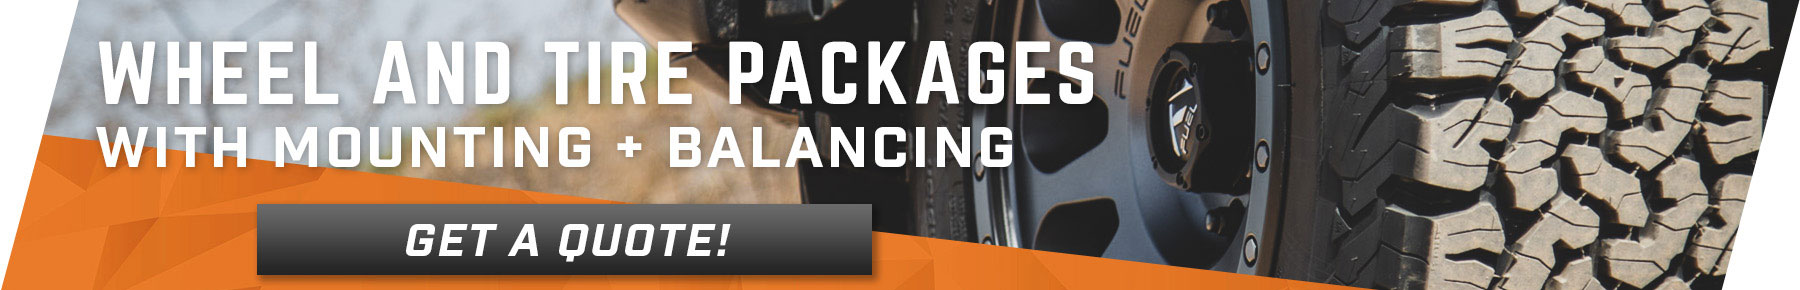 F150 Wheel and Tire Packages!